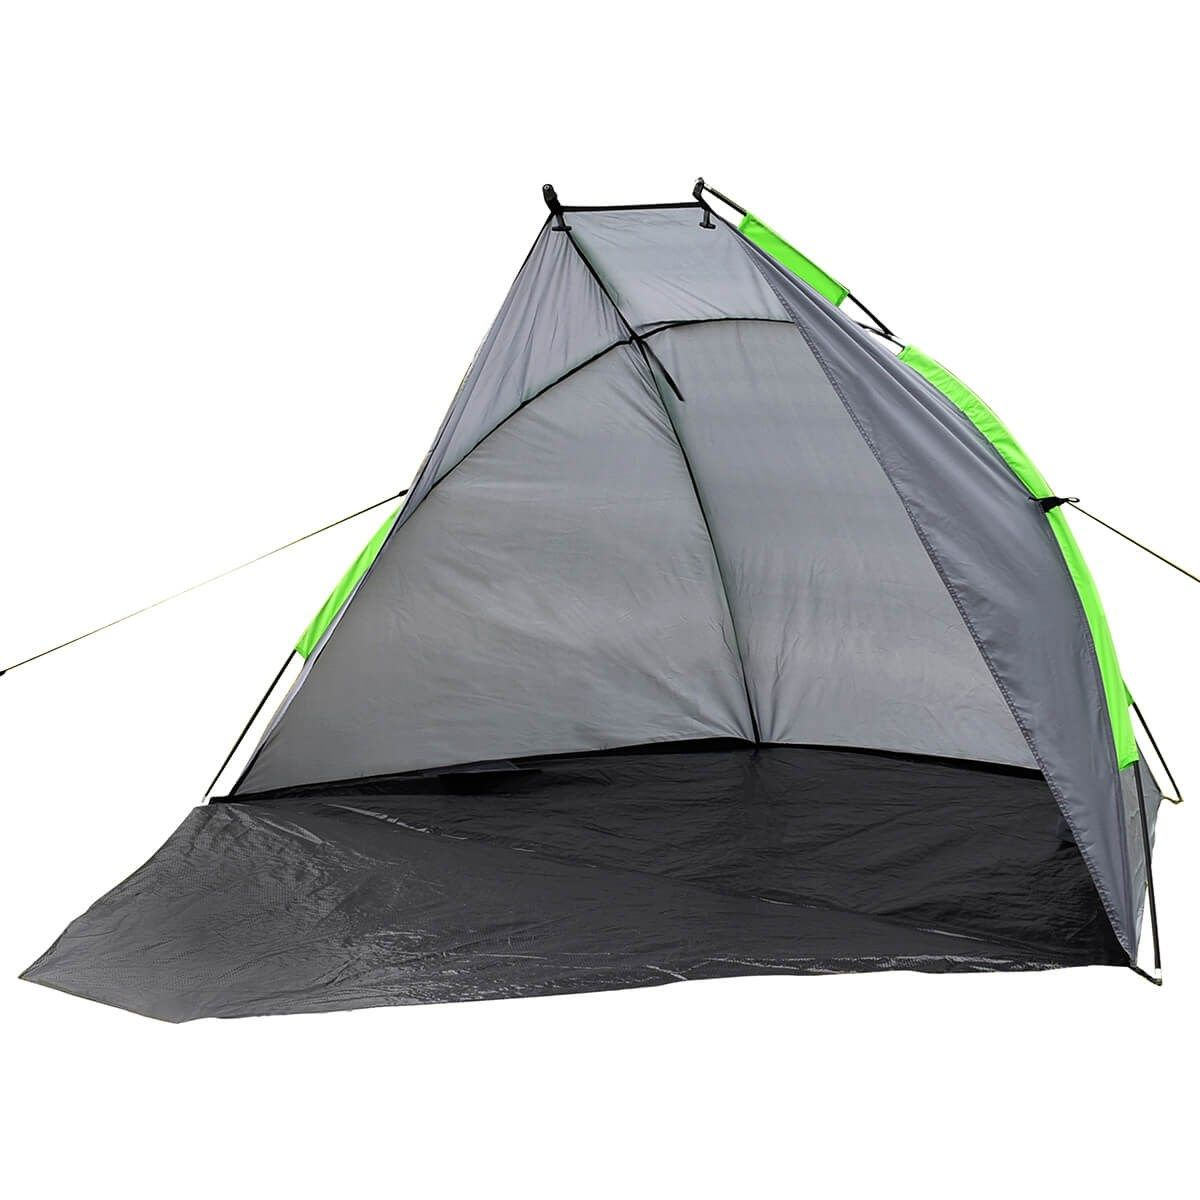 Outdoor Beach Tent Wind Break Shelter In 2020 Tent Beach Tent Camping Shelters